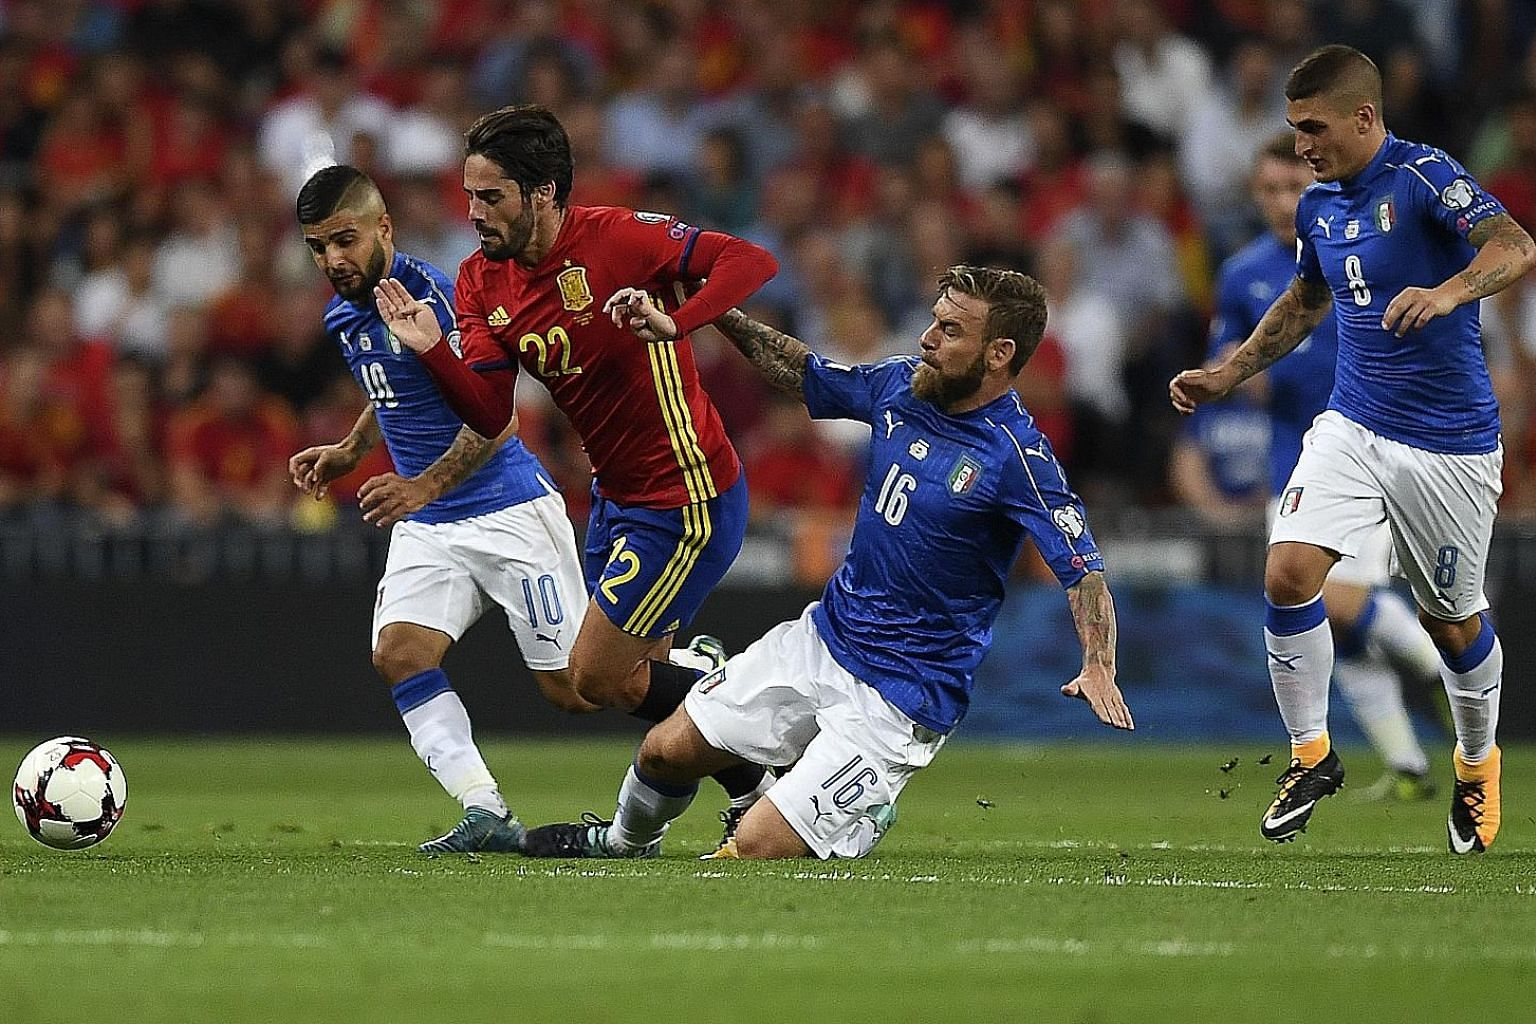 Spain midfielder Isco attempting to get the better of Italy's Lorenzo Insigne (far left) and Daniele de Rossi.